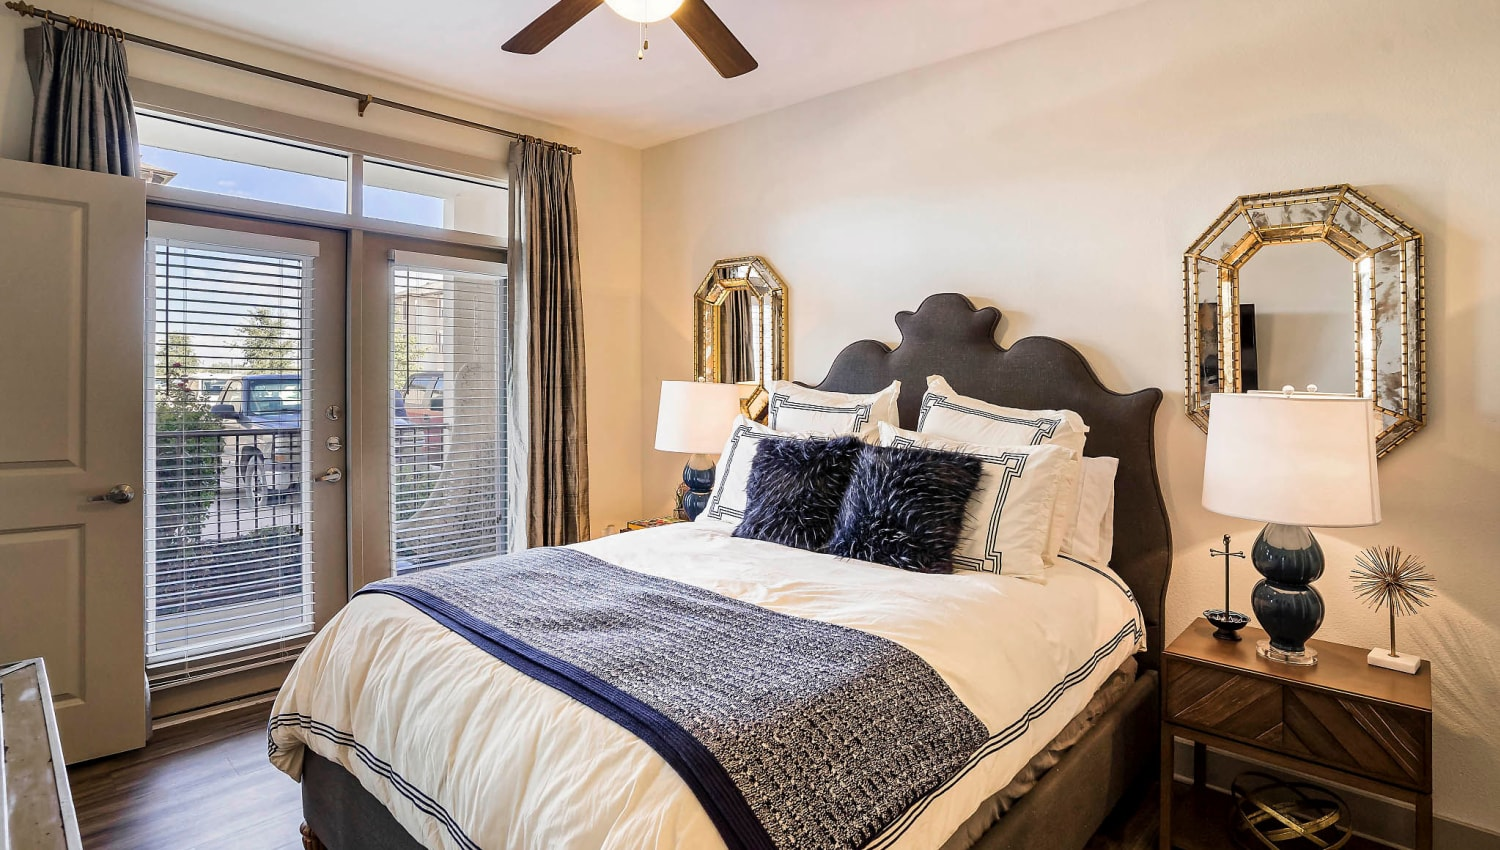 Ceiling fan and hardwood floors in a model home's master bedroom at Sundance Creek in Midland, Texas